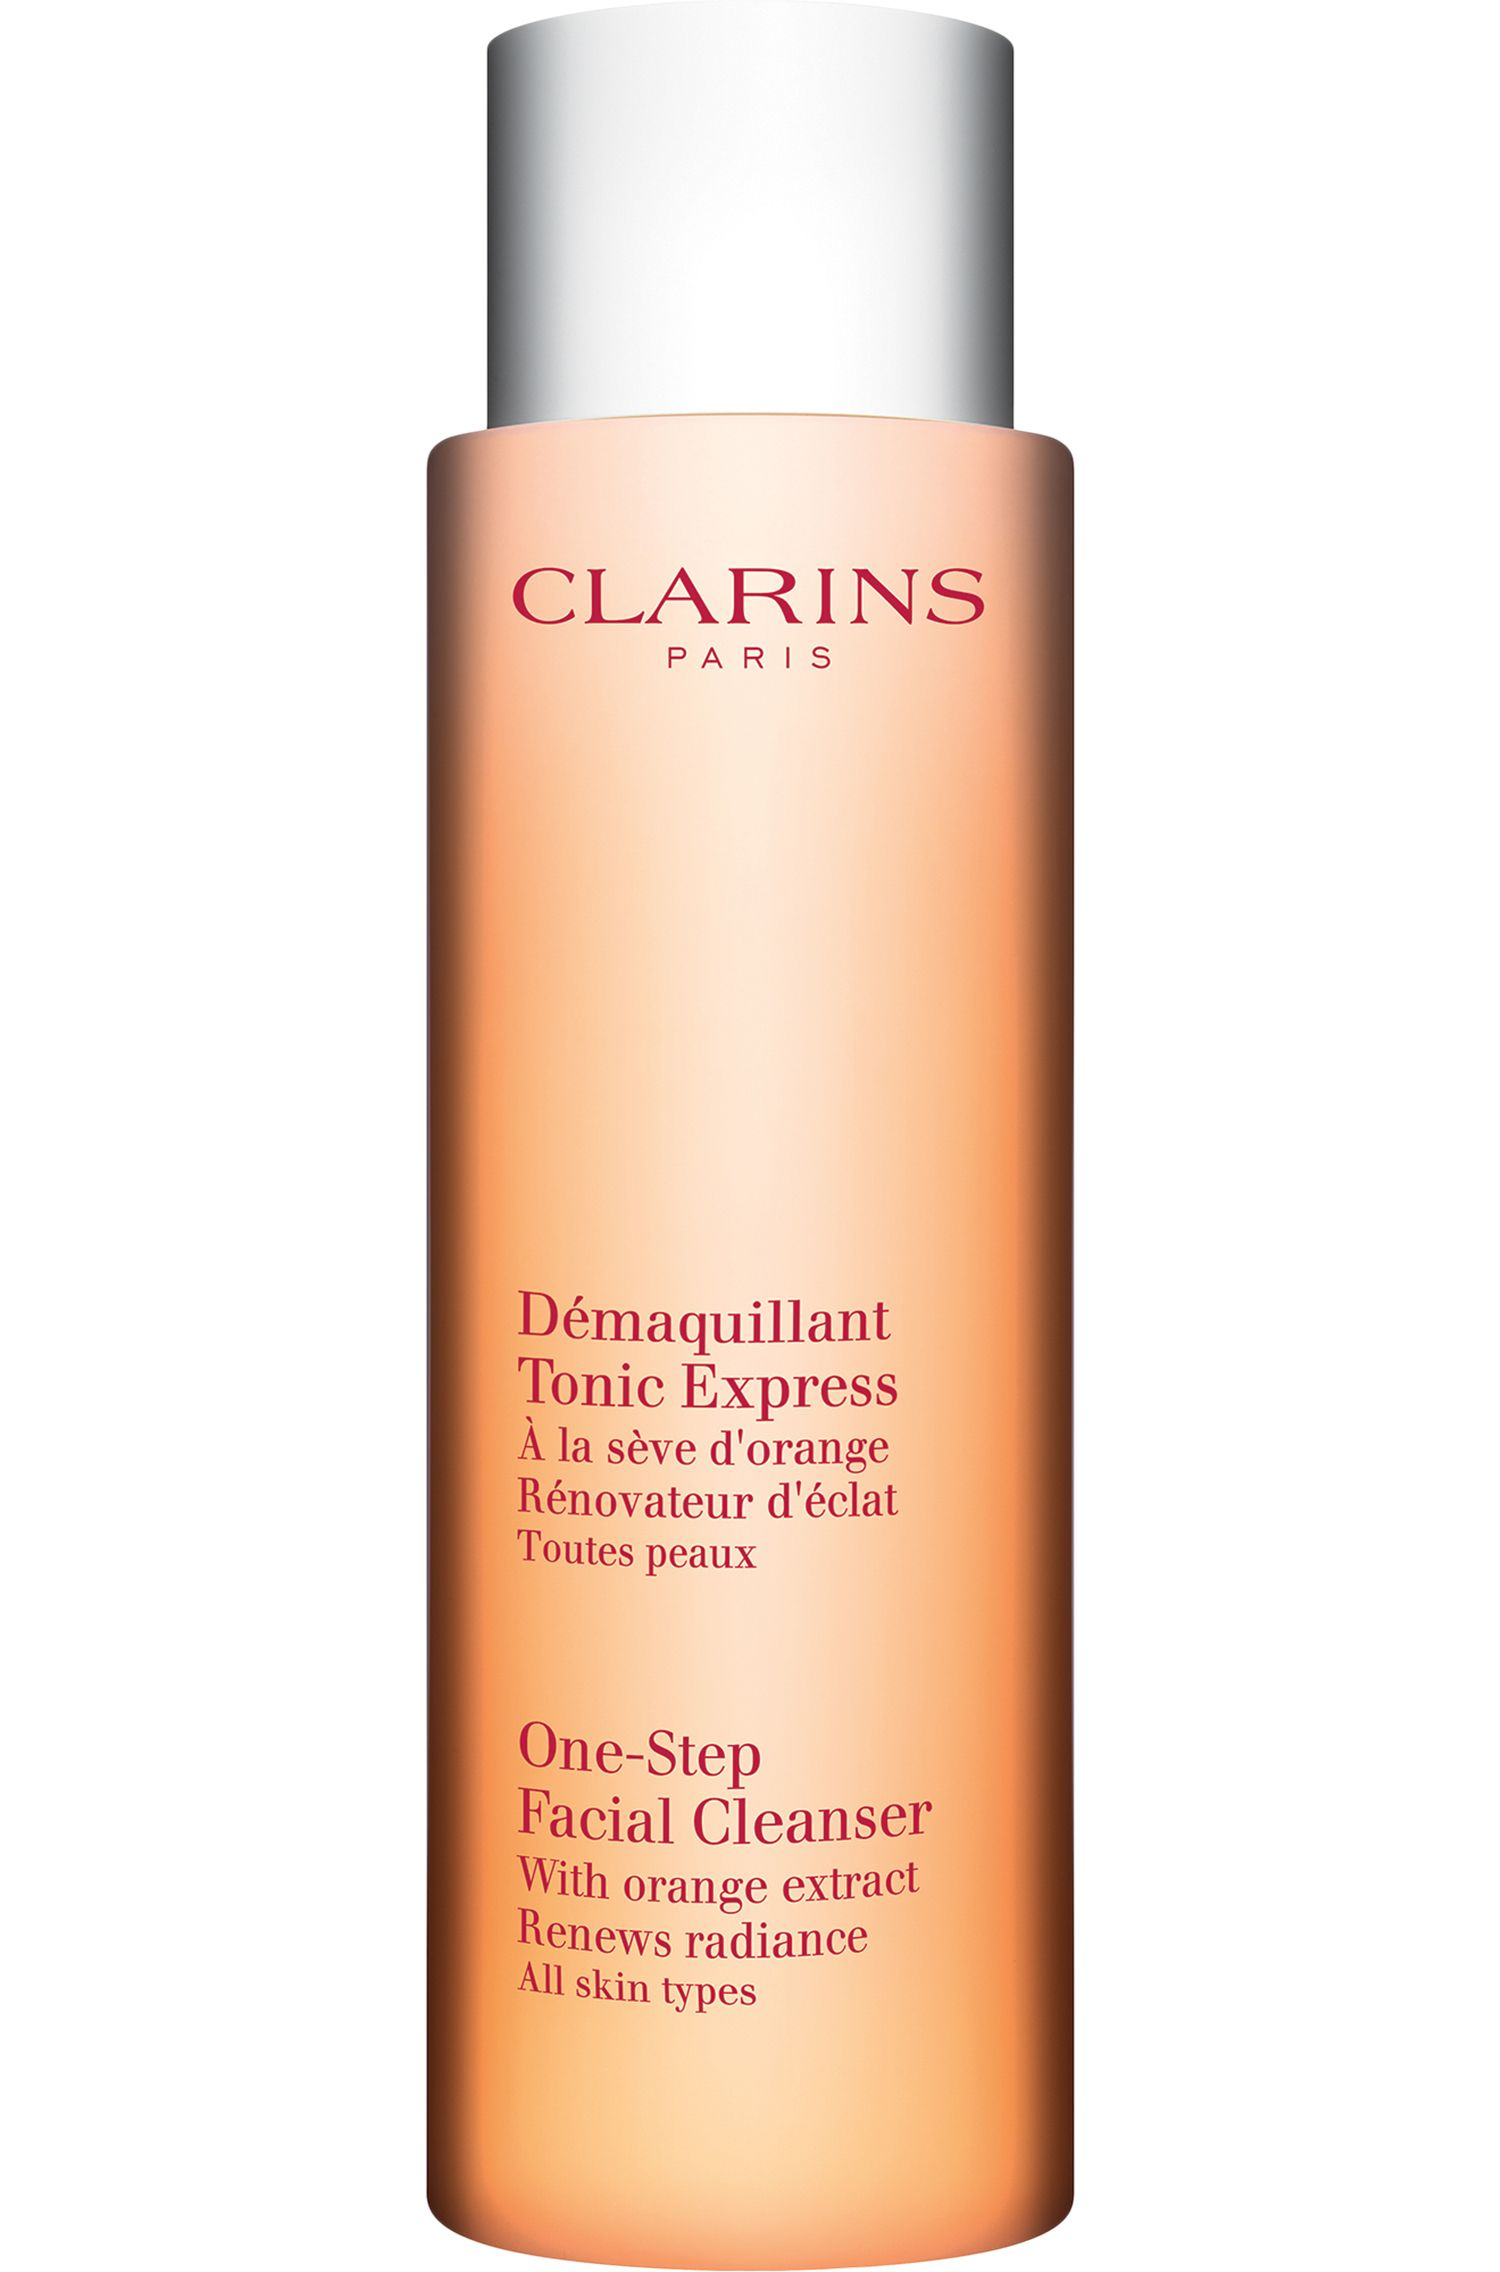 Blissim : Clarins - Démaquillant tonic express anti-pollution - Démaquillant tonic express anti-pollution